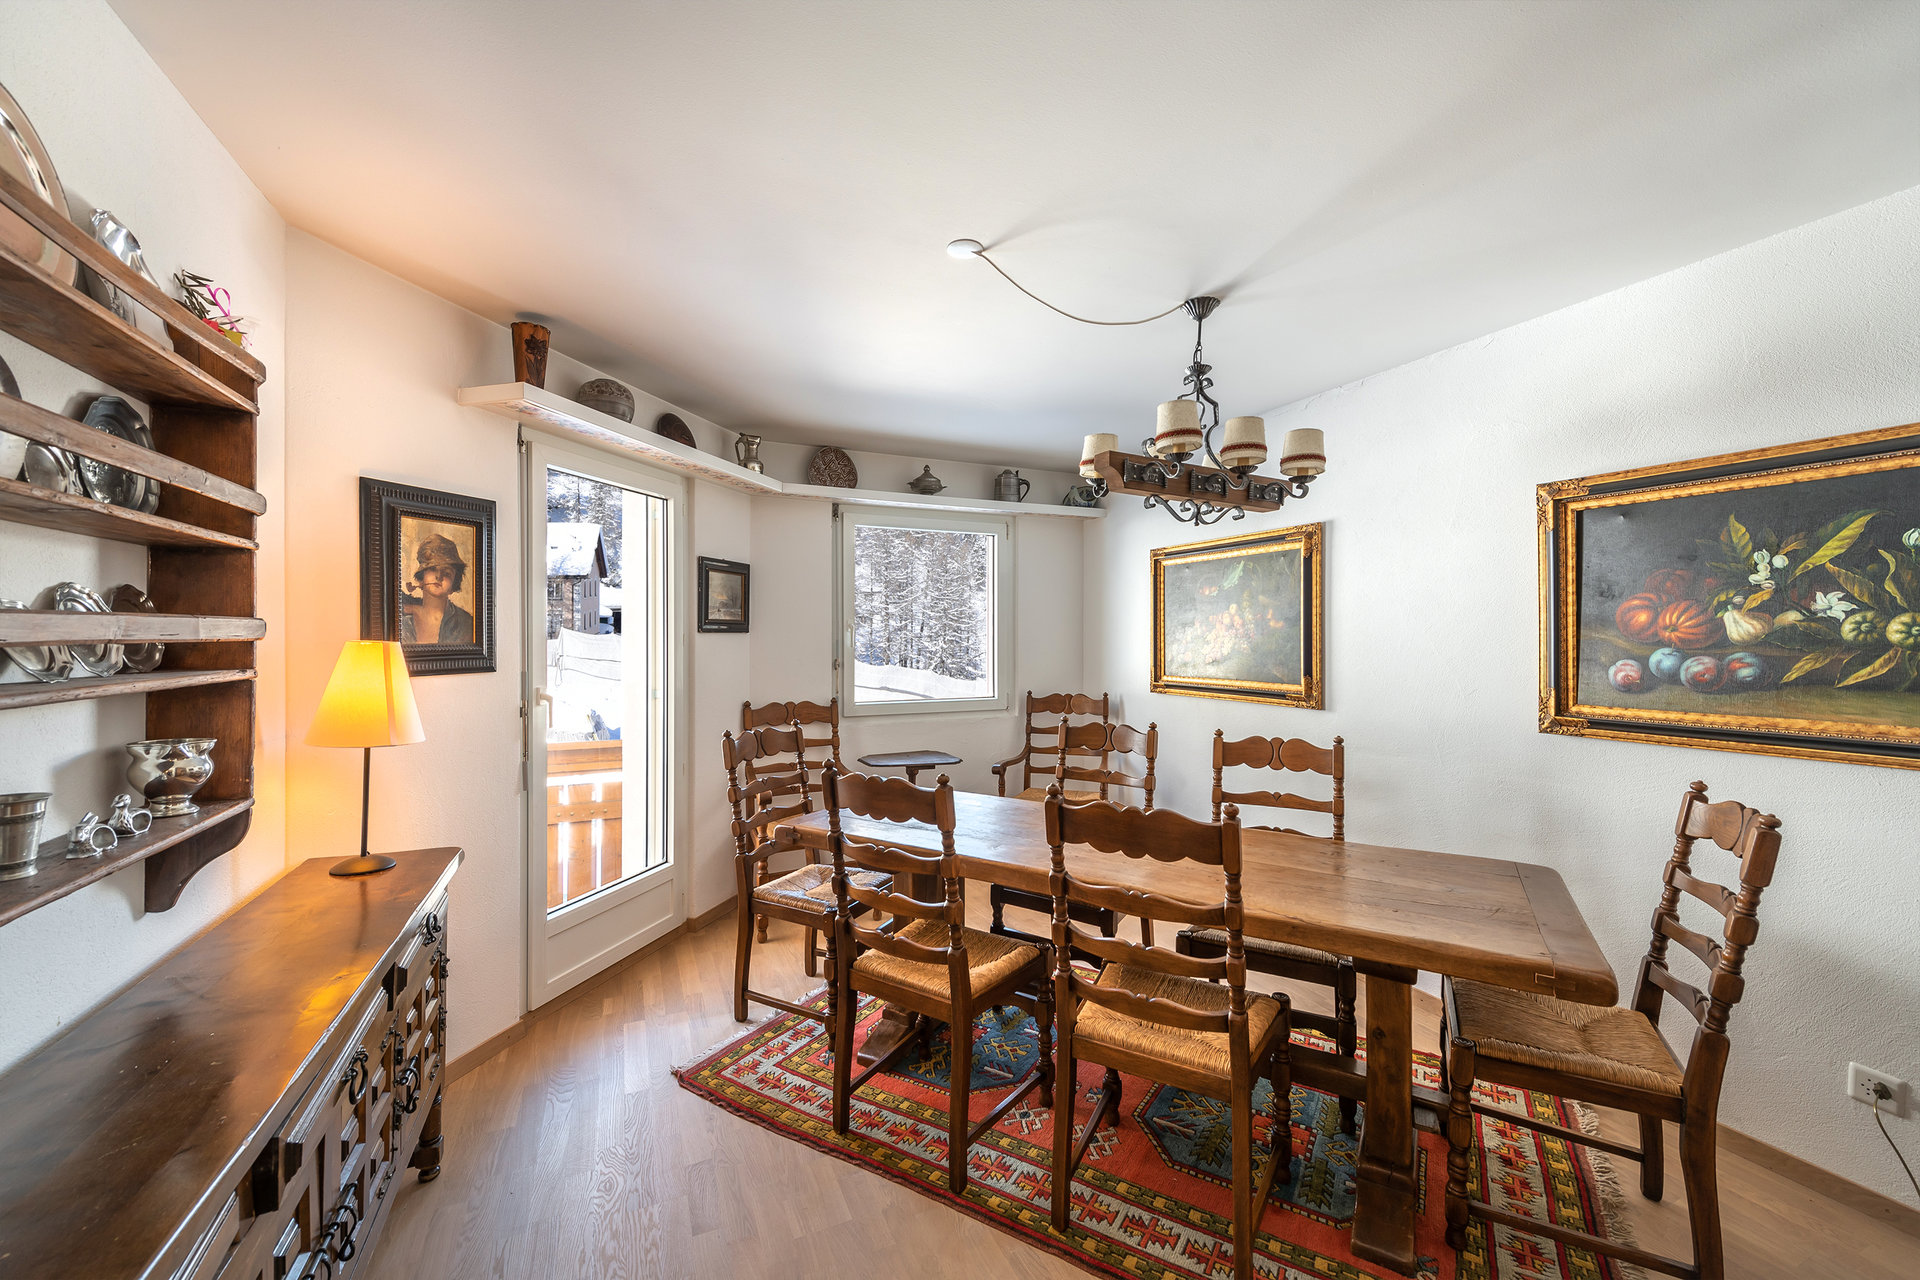 Big apartament for sale in Sankt Moritz, Switzerland- dining room